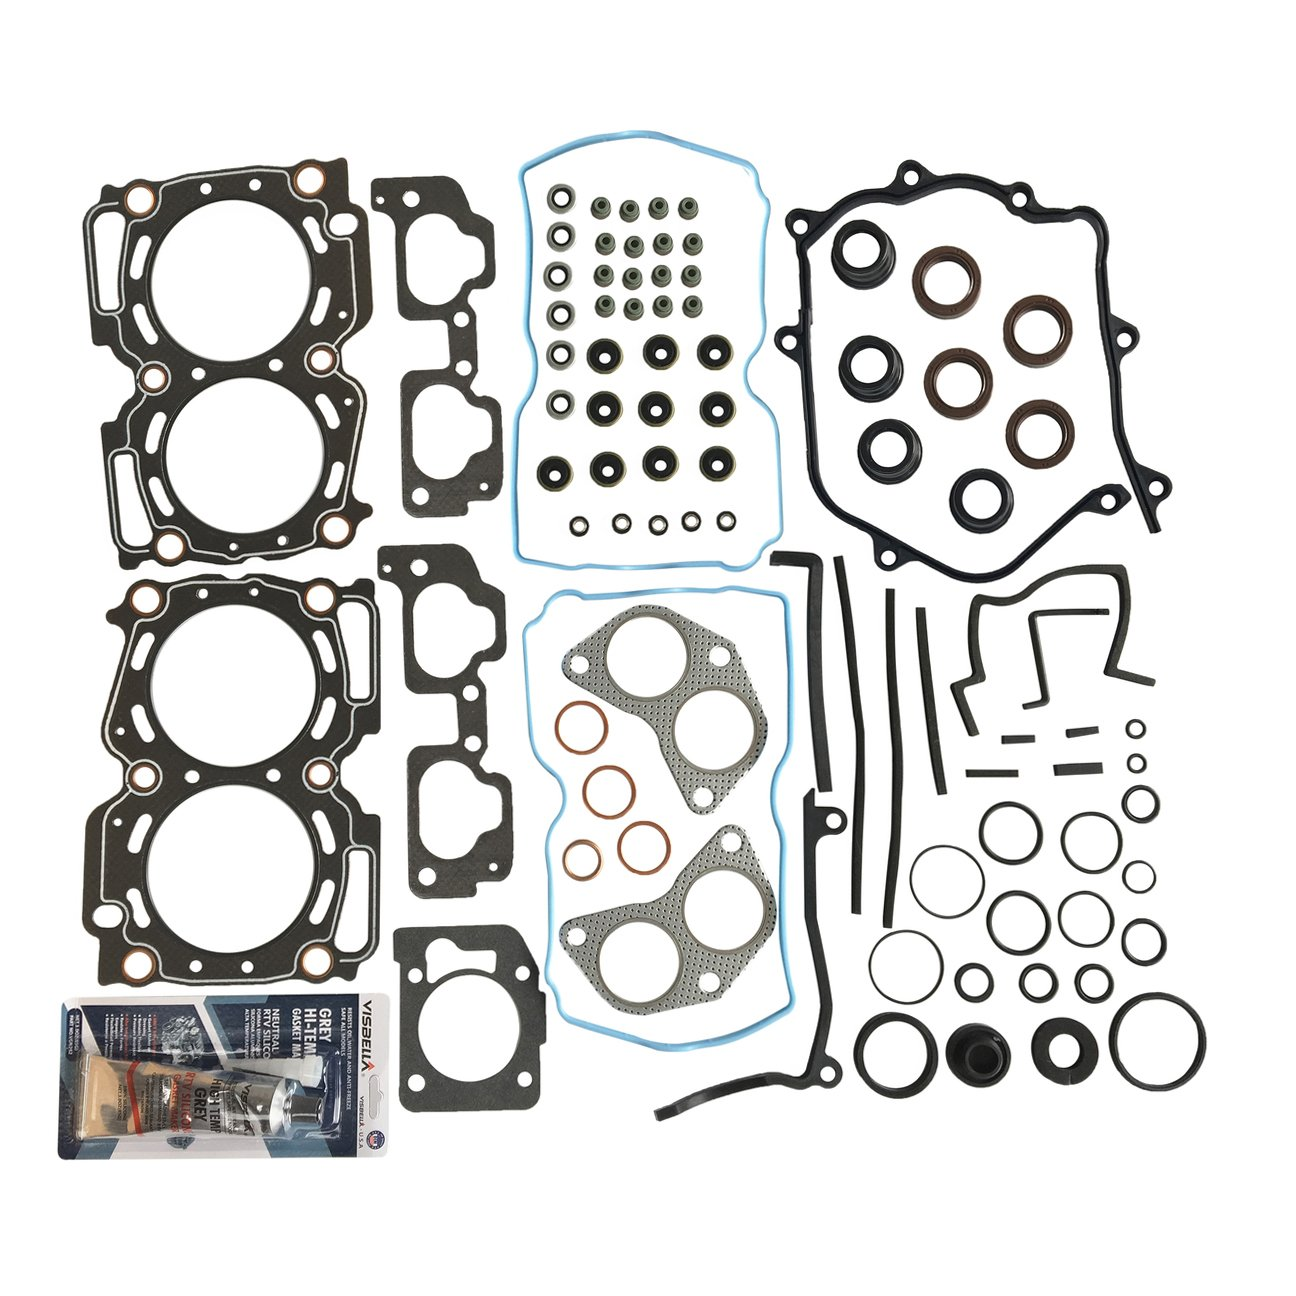 SKP HS26170PT1 Head Gasket Set, 1 Pack